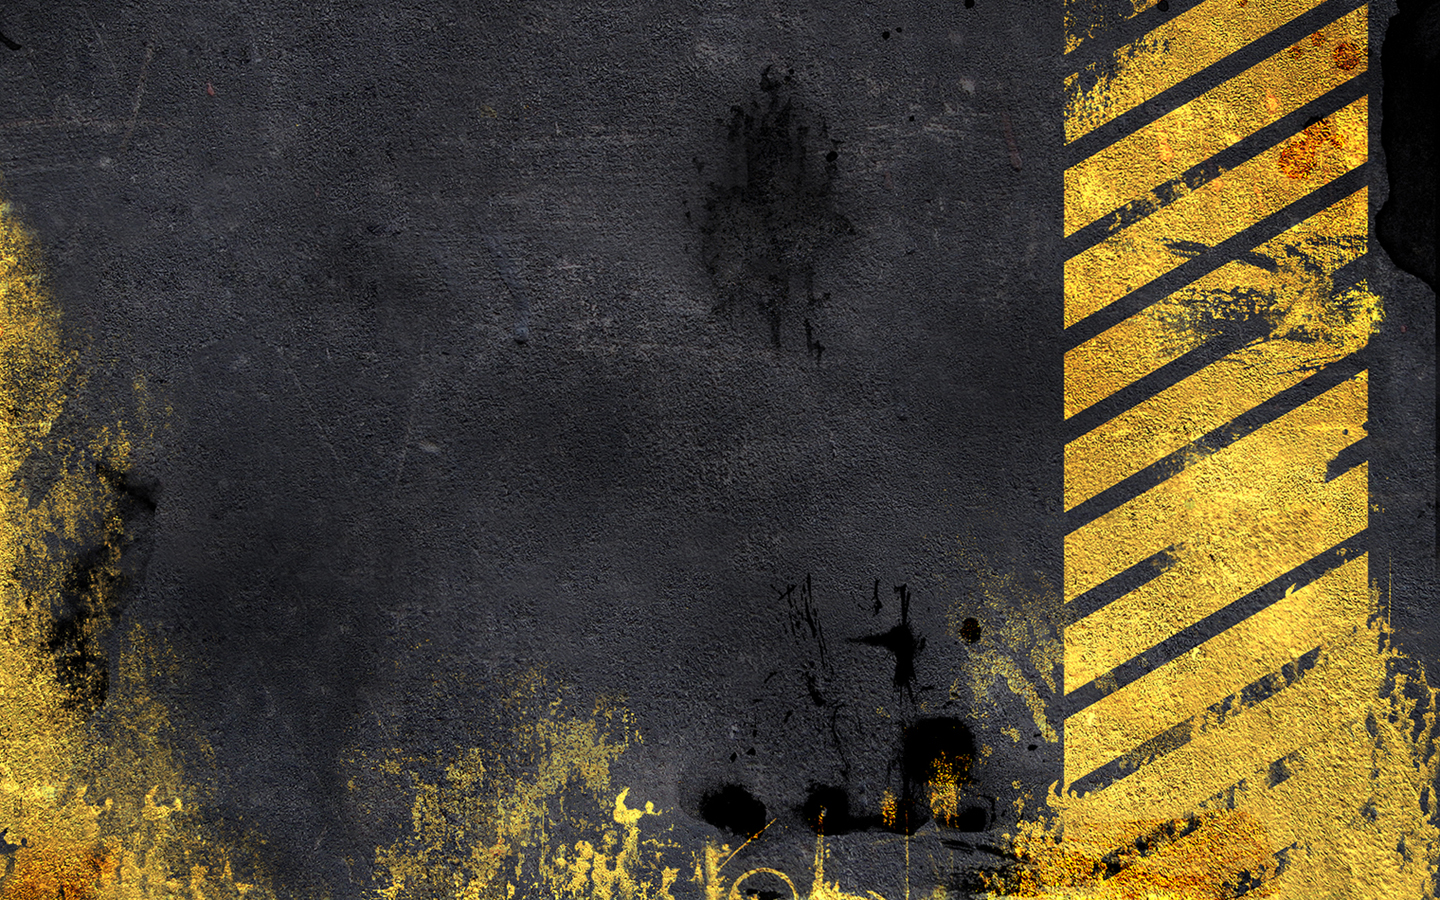 Full hd wallpapers backgrounds black grunge yellow